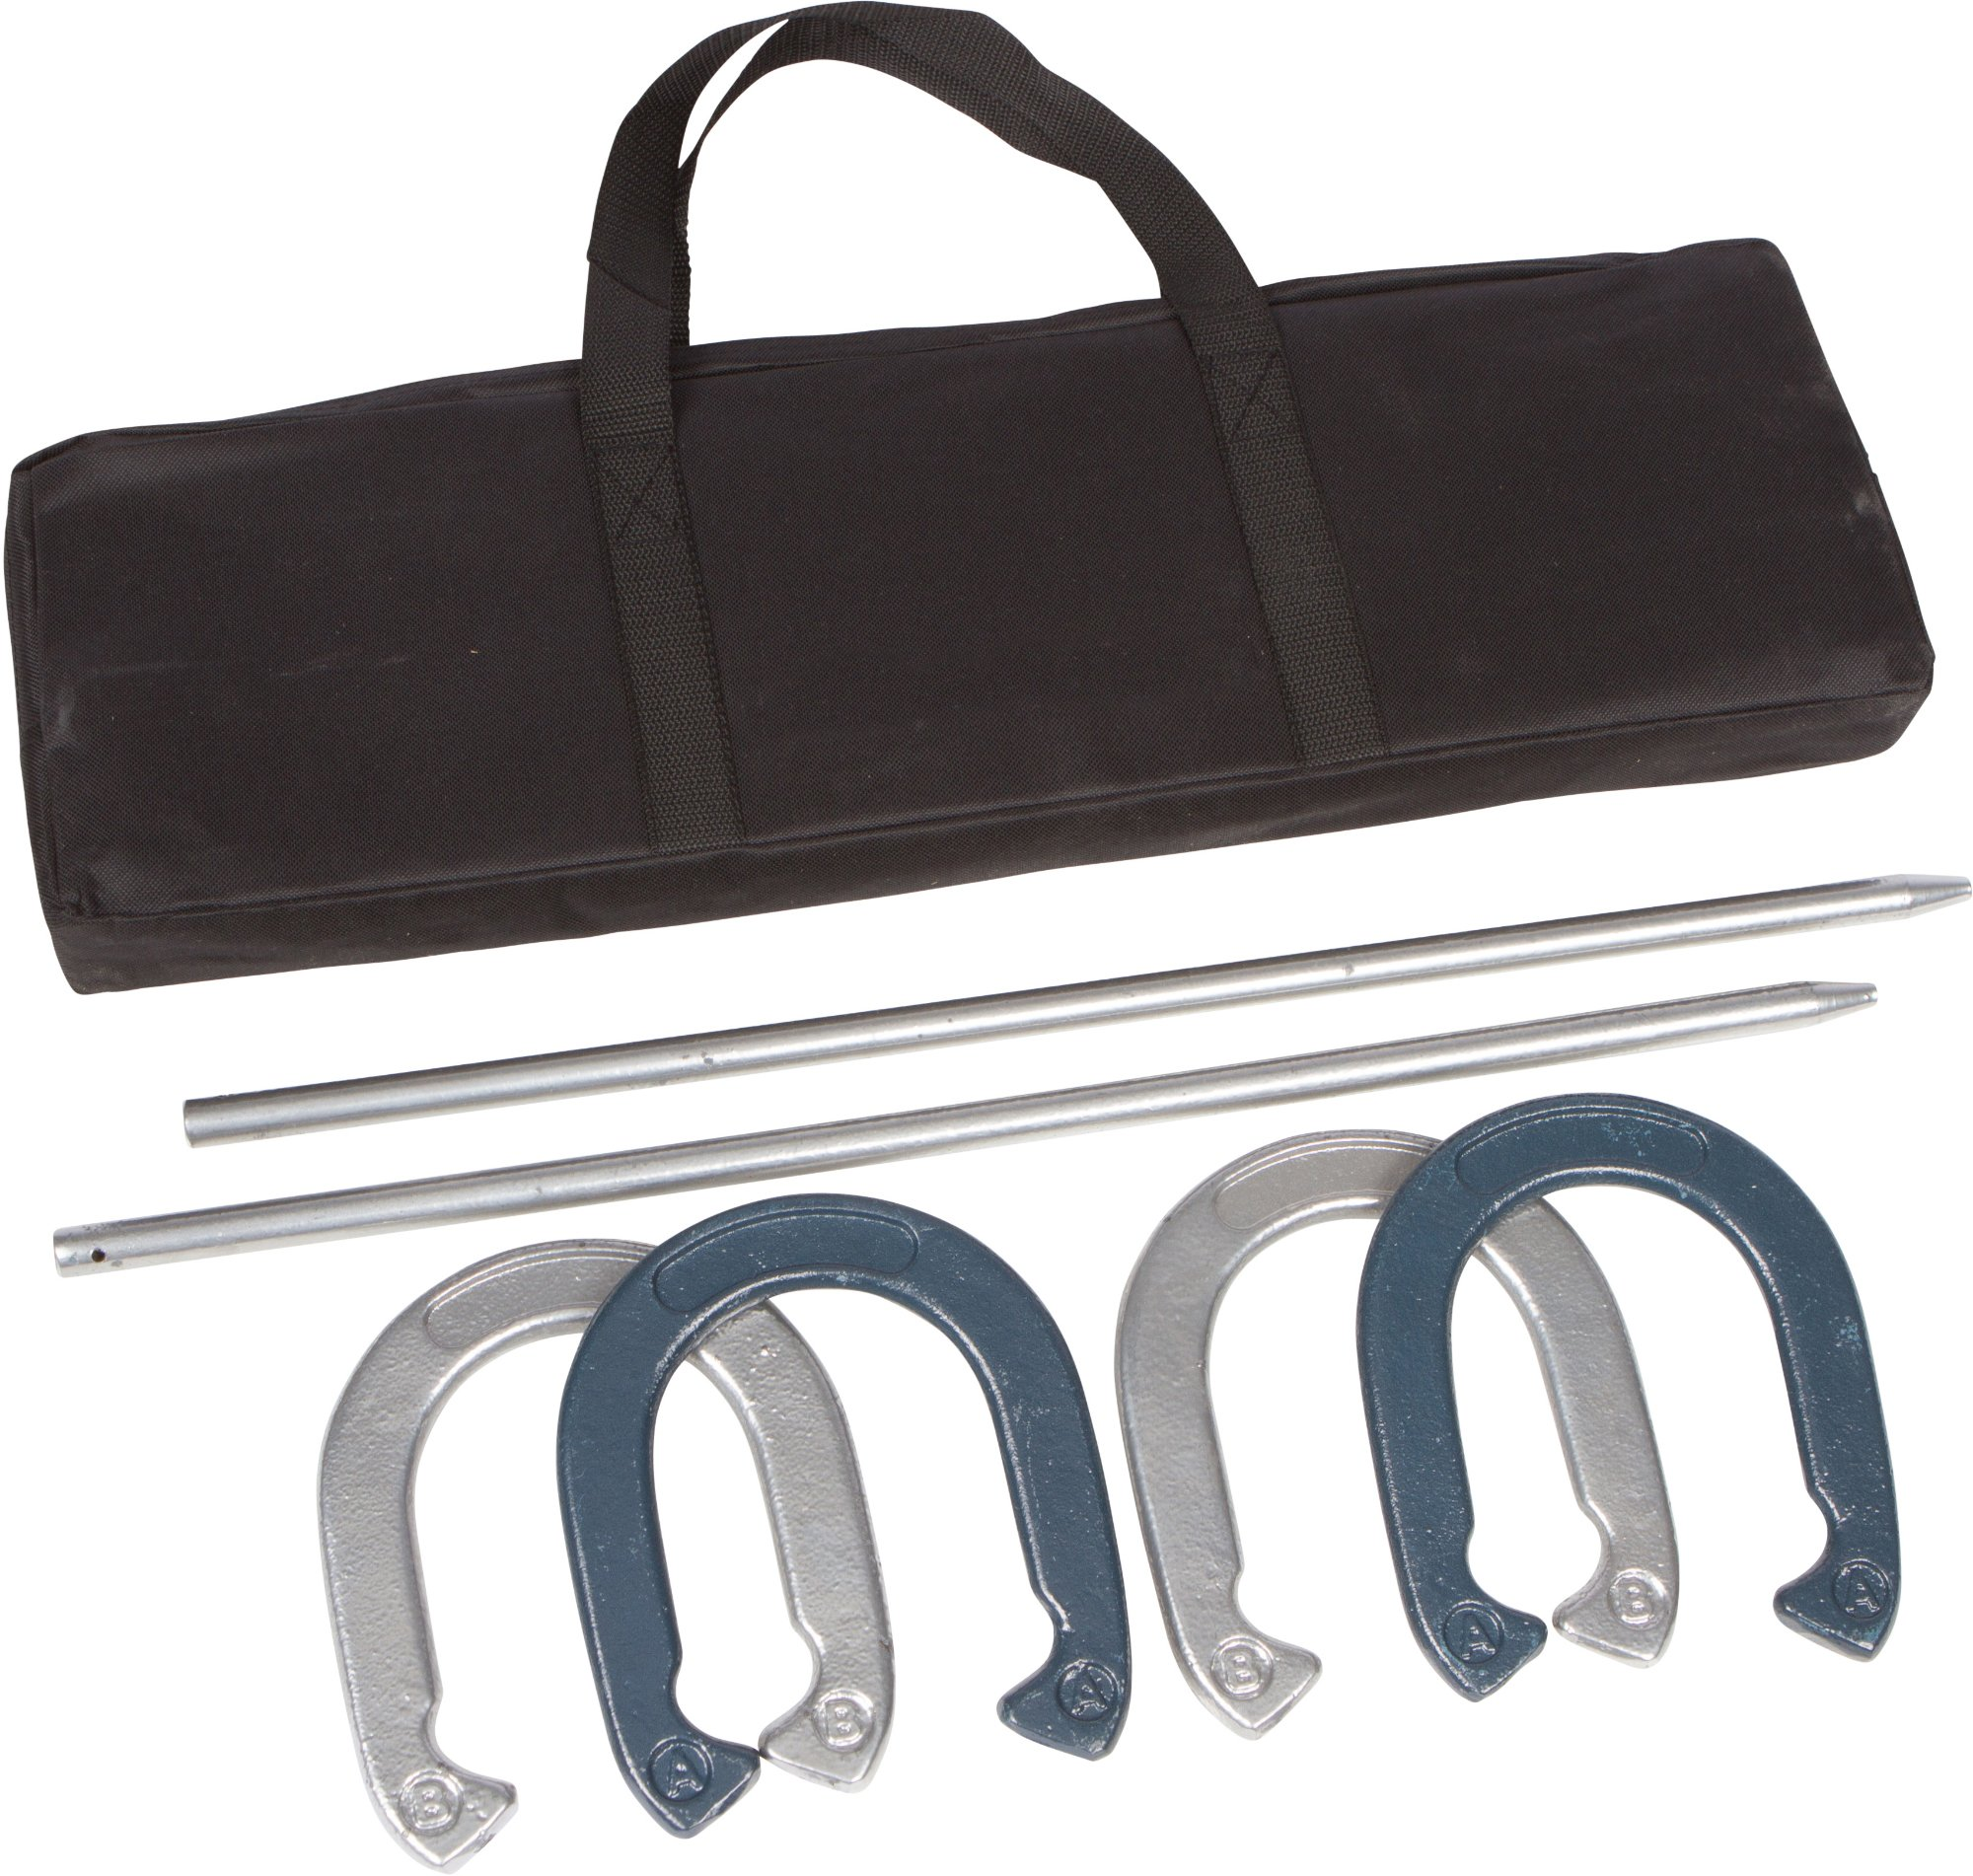 Pro Horseshoe Set - Powder Coated Steel with Carry Case by Trademark Innovations by Trademark Innovations